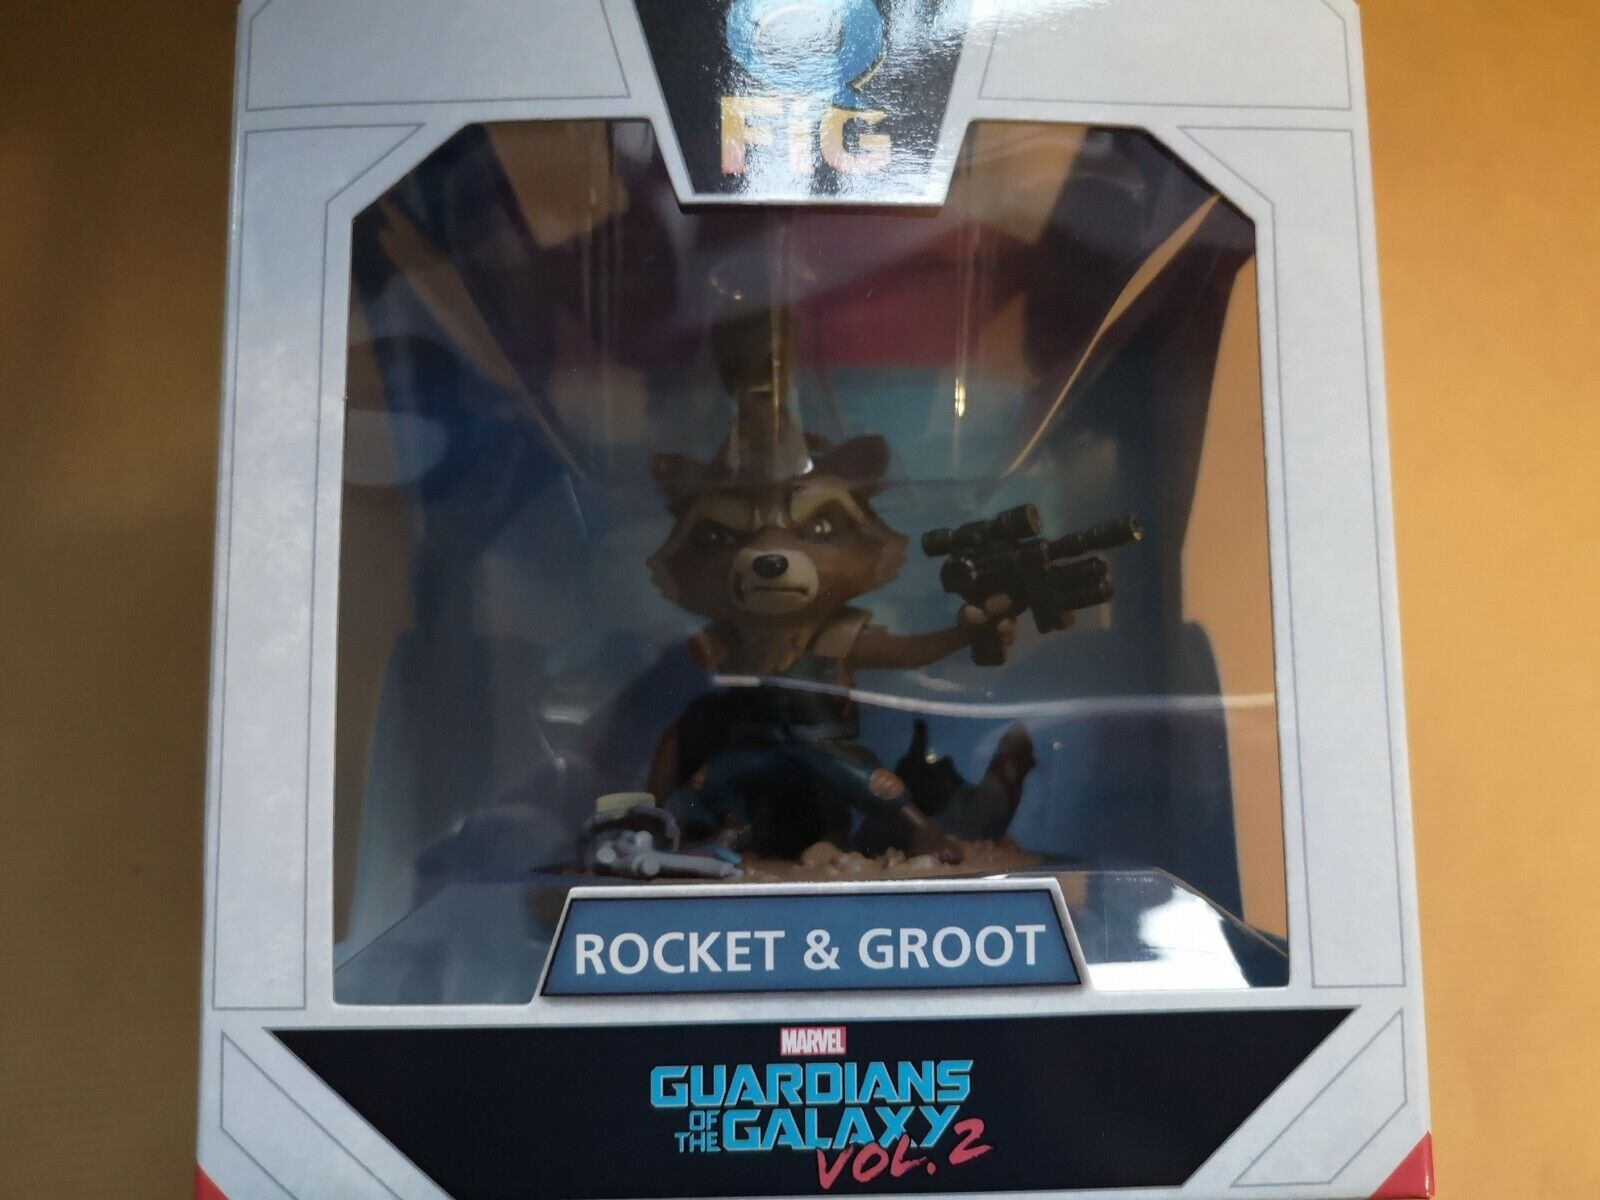 UNIQUE Rocket & Groot (Marvel Guardians of the Galaxy 2)